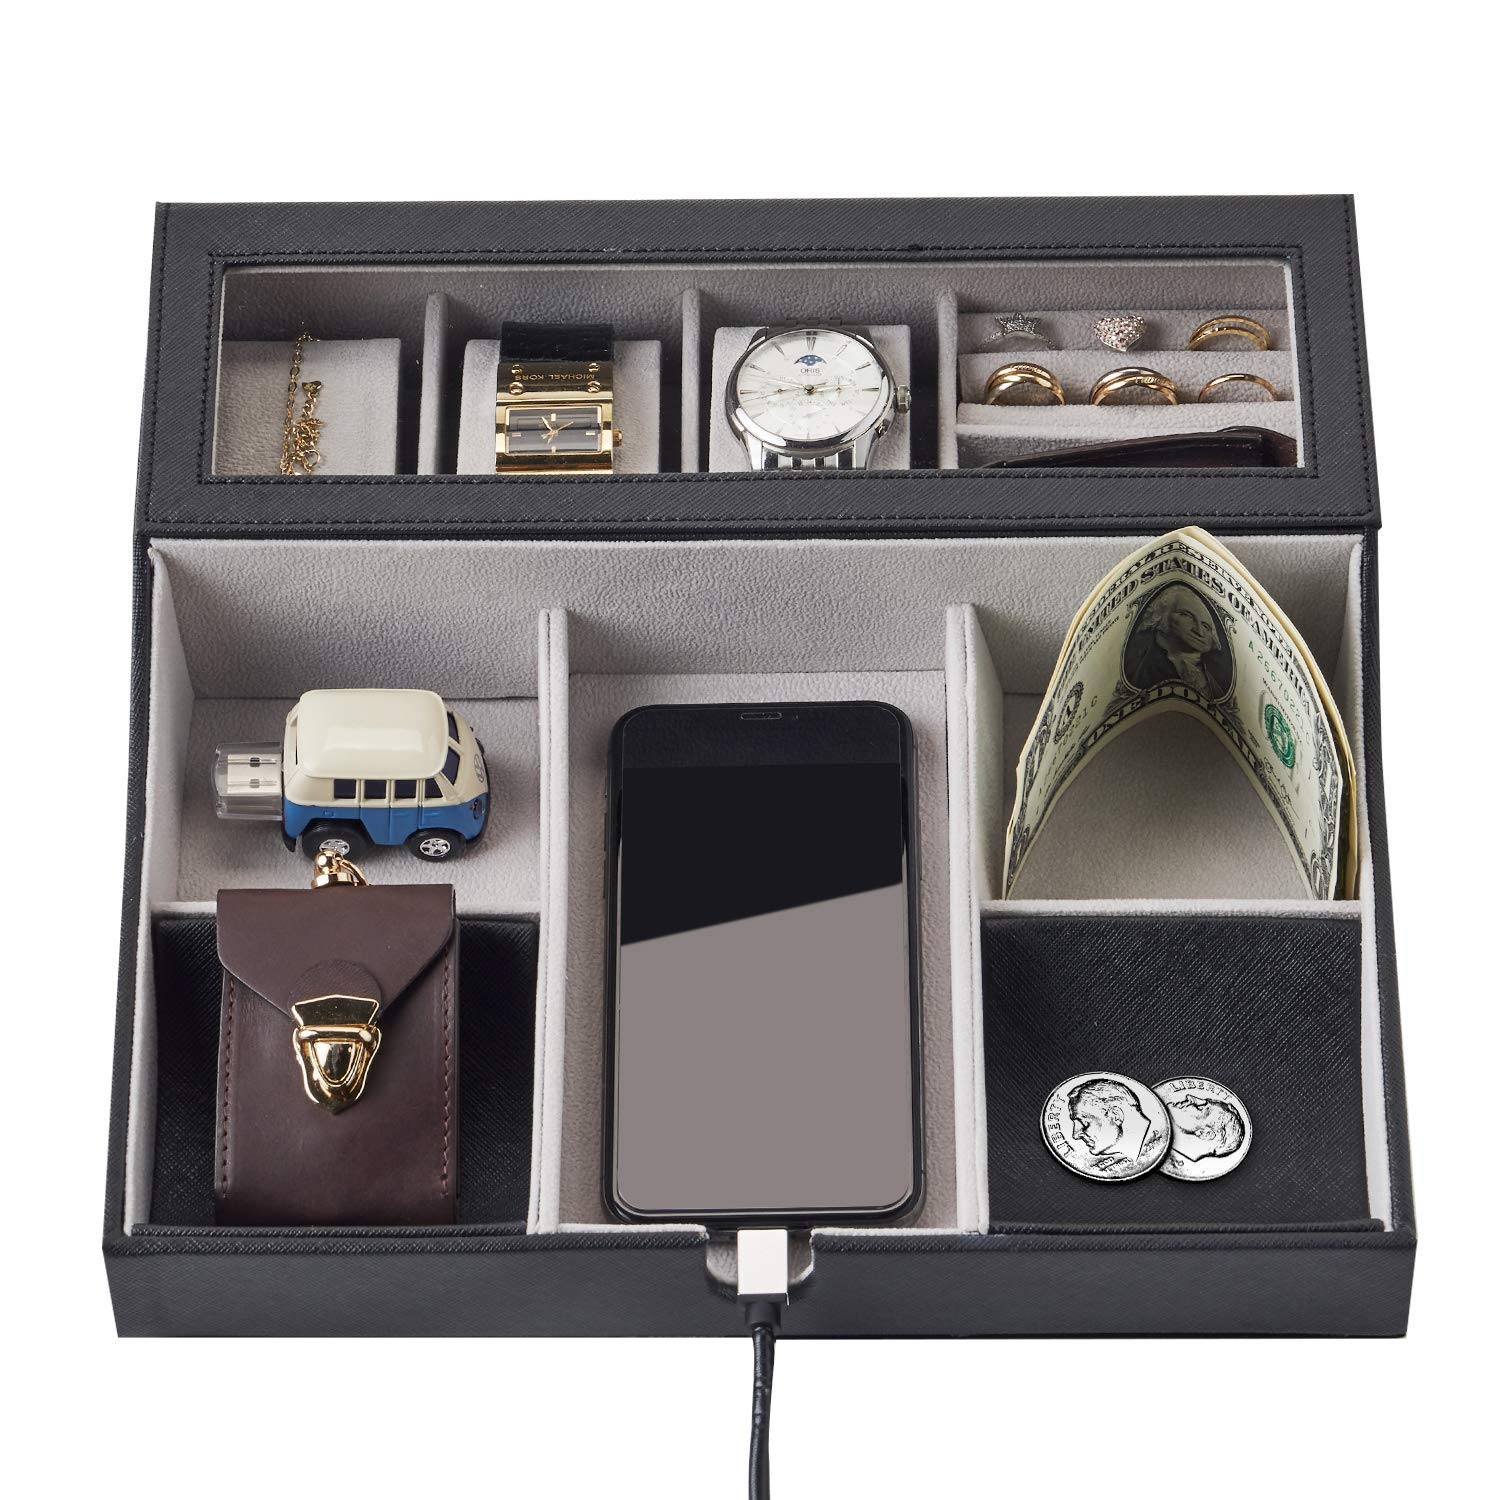 NEATOPA Valet Tray - Men Jewelry, Keys, Watch Nightstand Organizer for Perfect Life On Table Valet Box Made of Black PU Leather, Velvet with Charging Station (10 Compartment)